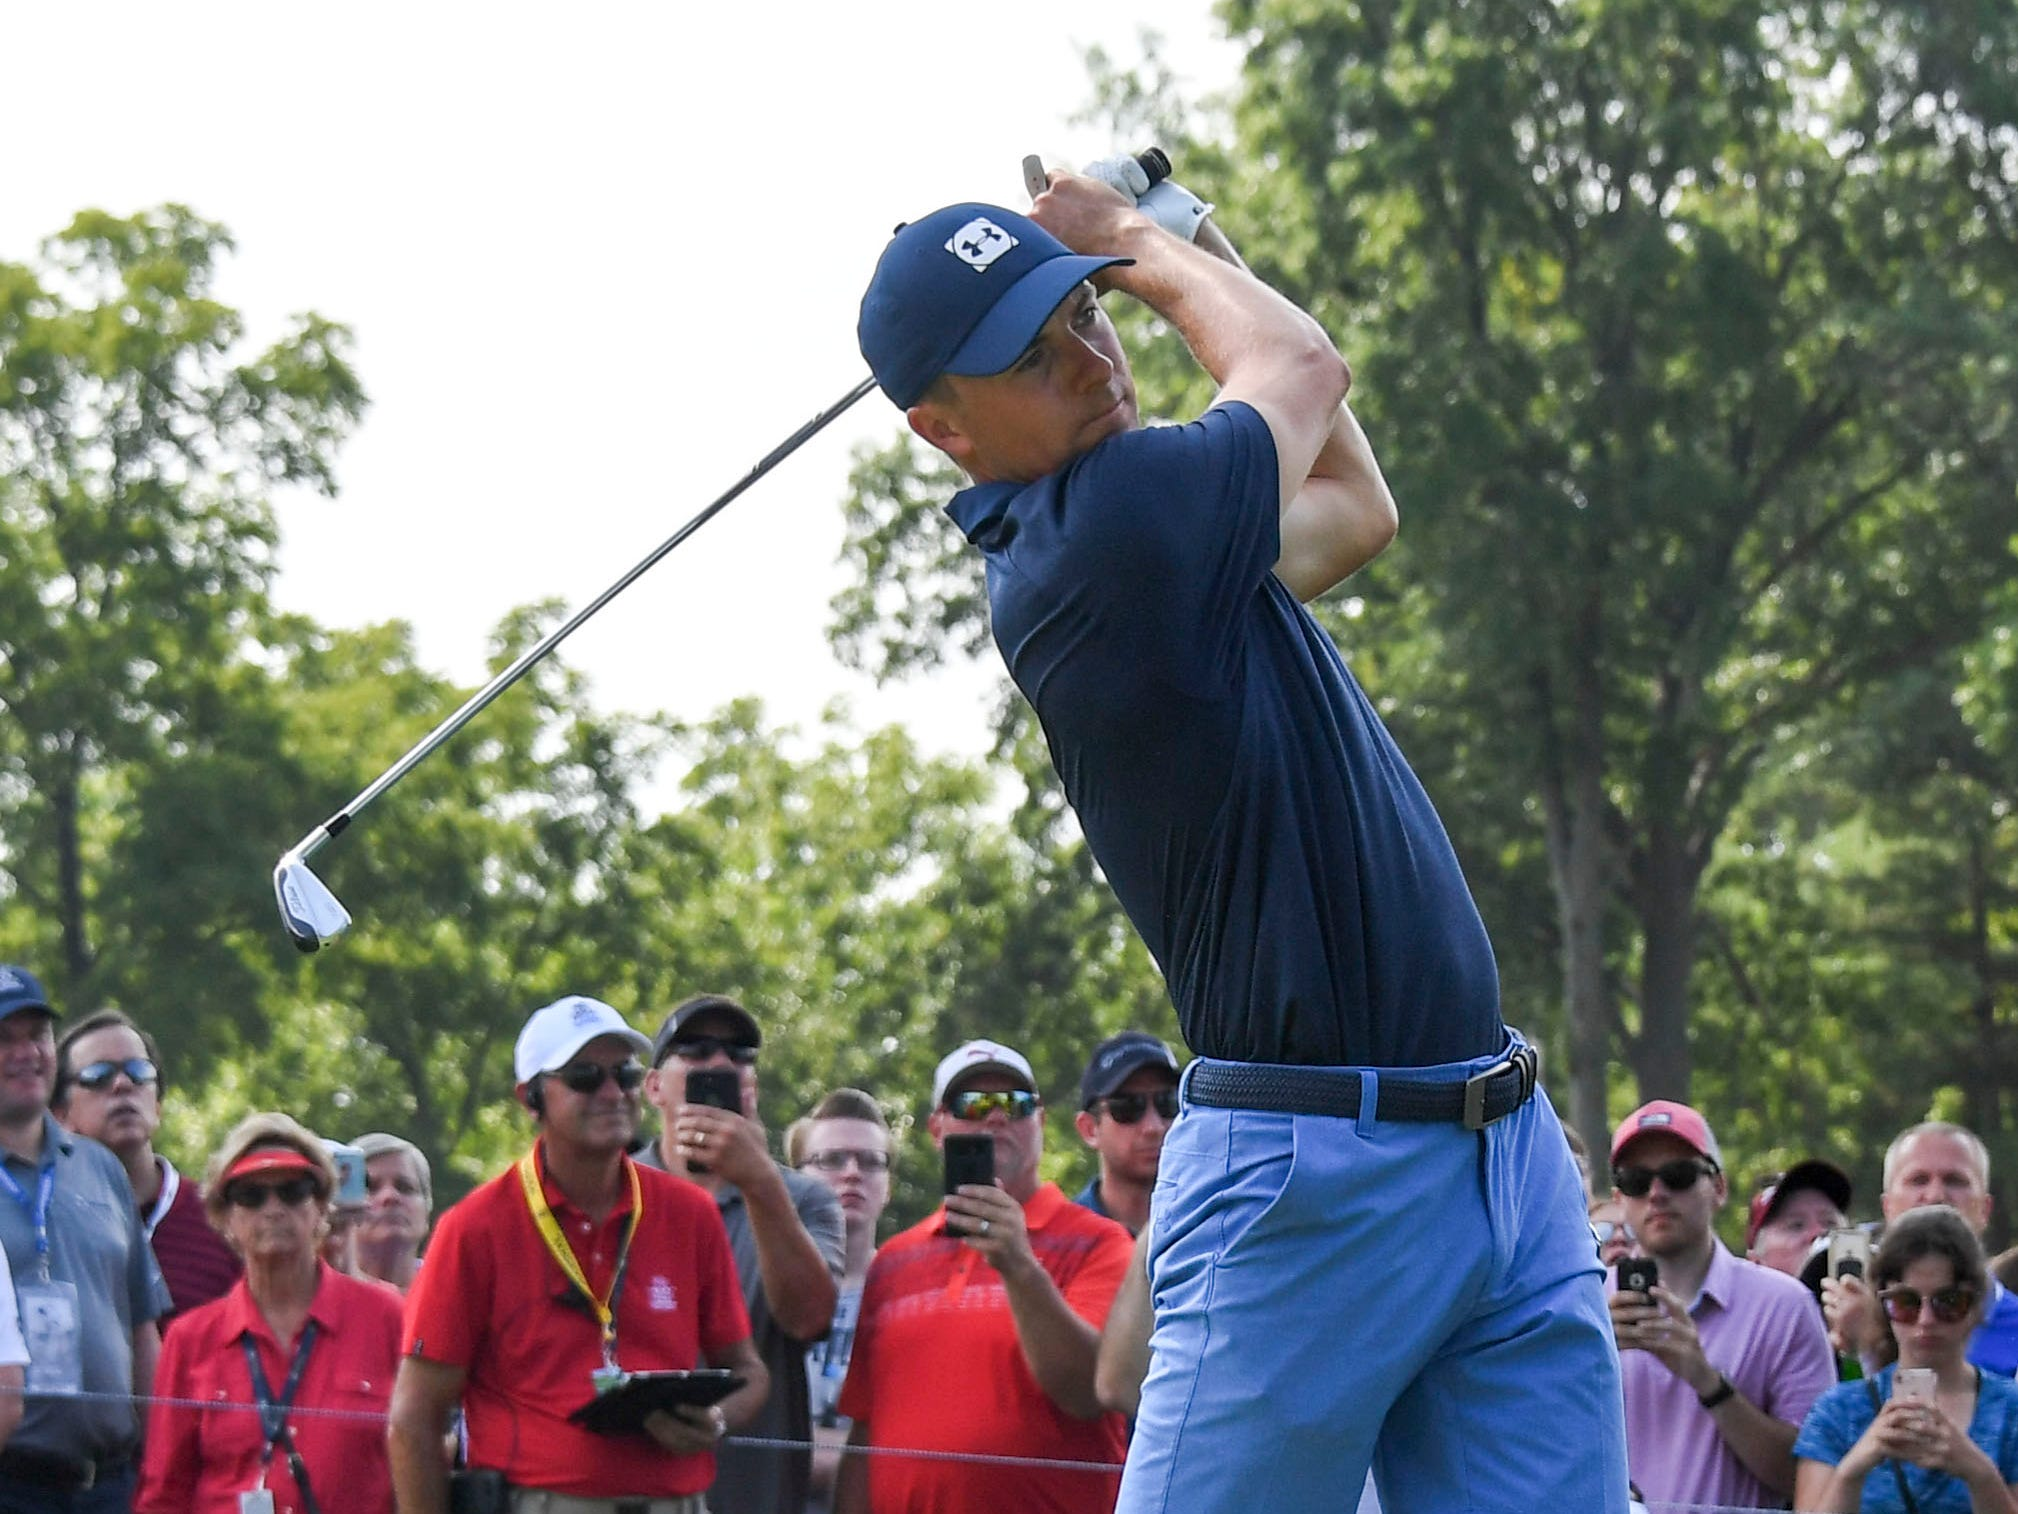 Jordan Spieth hits his tee shot on the sixth hole. Shorts are allowed during practice rounds.